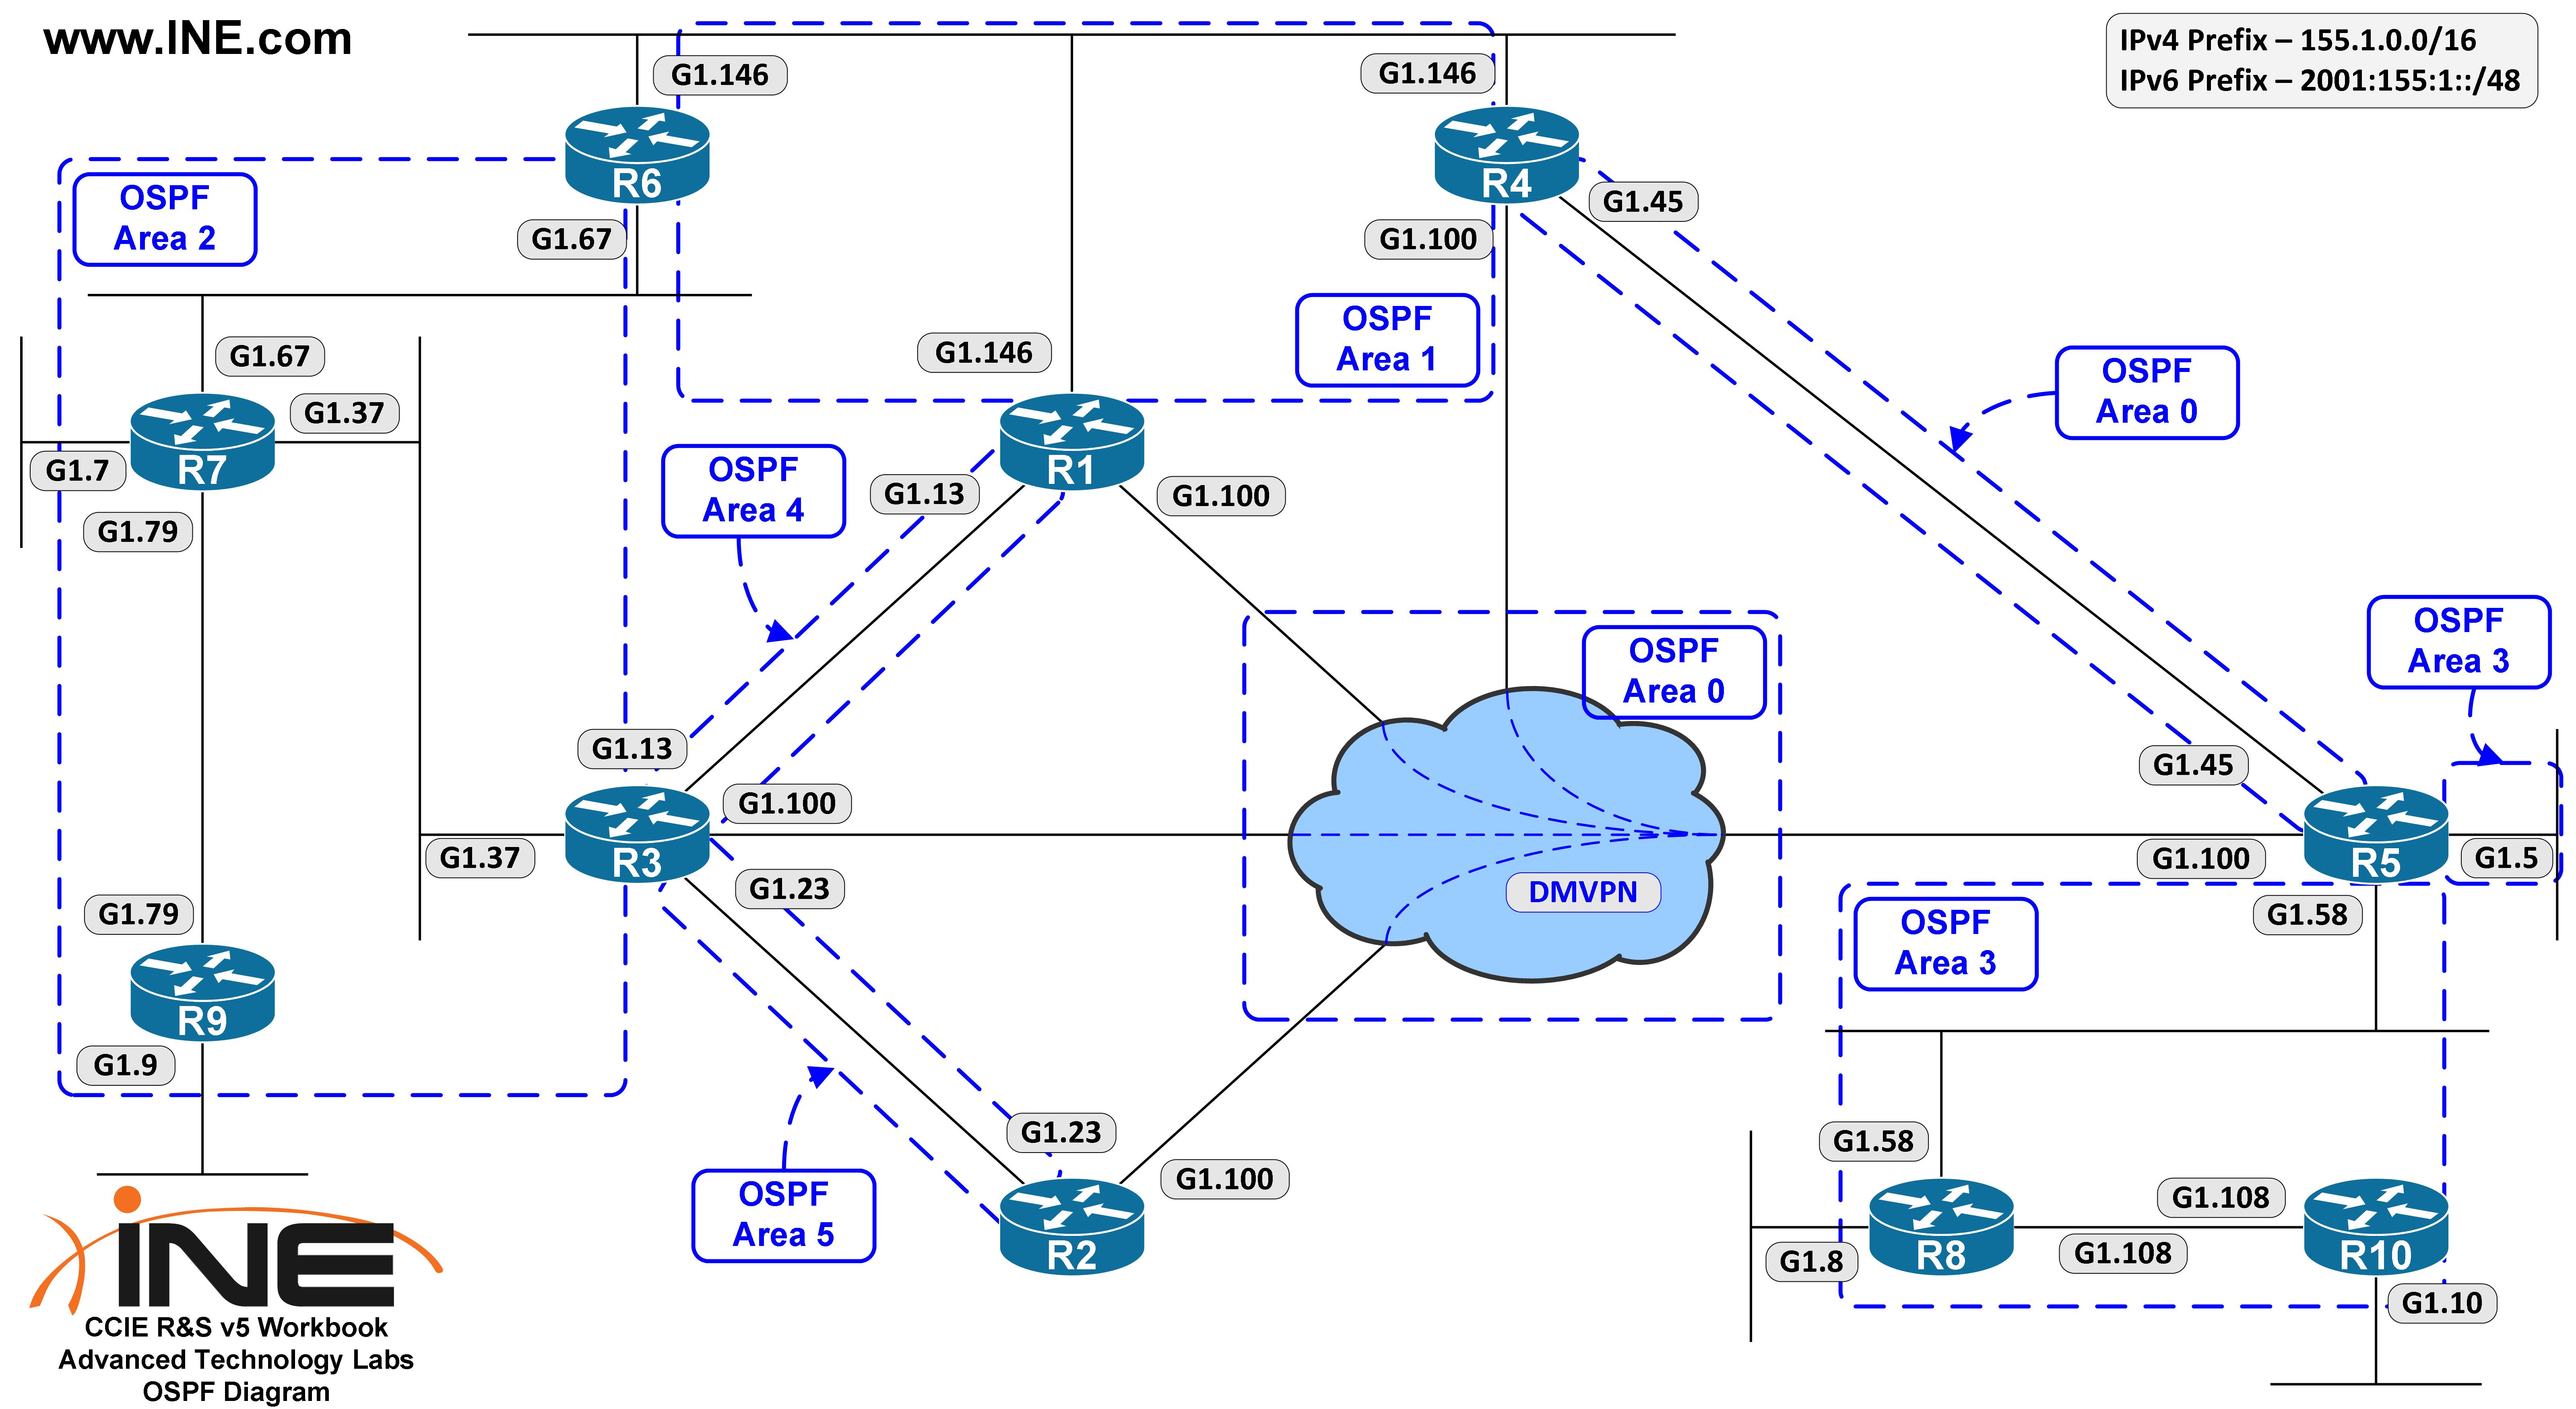 packetscaper/CCIE-RS-Lab: A utility to help practice and study for